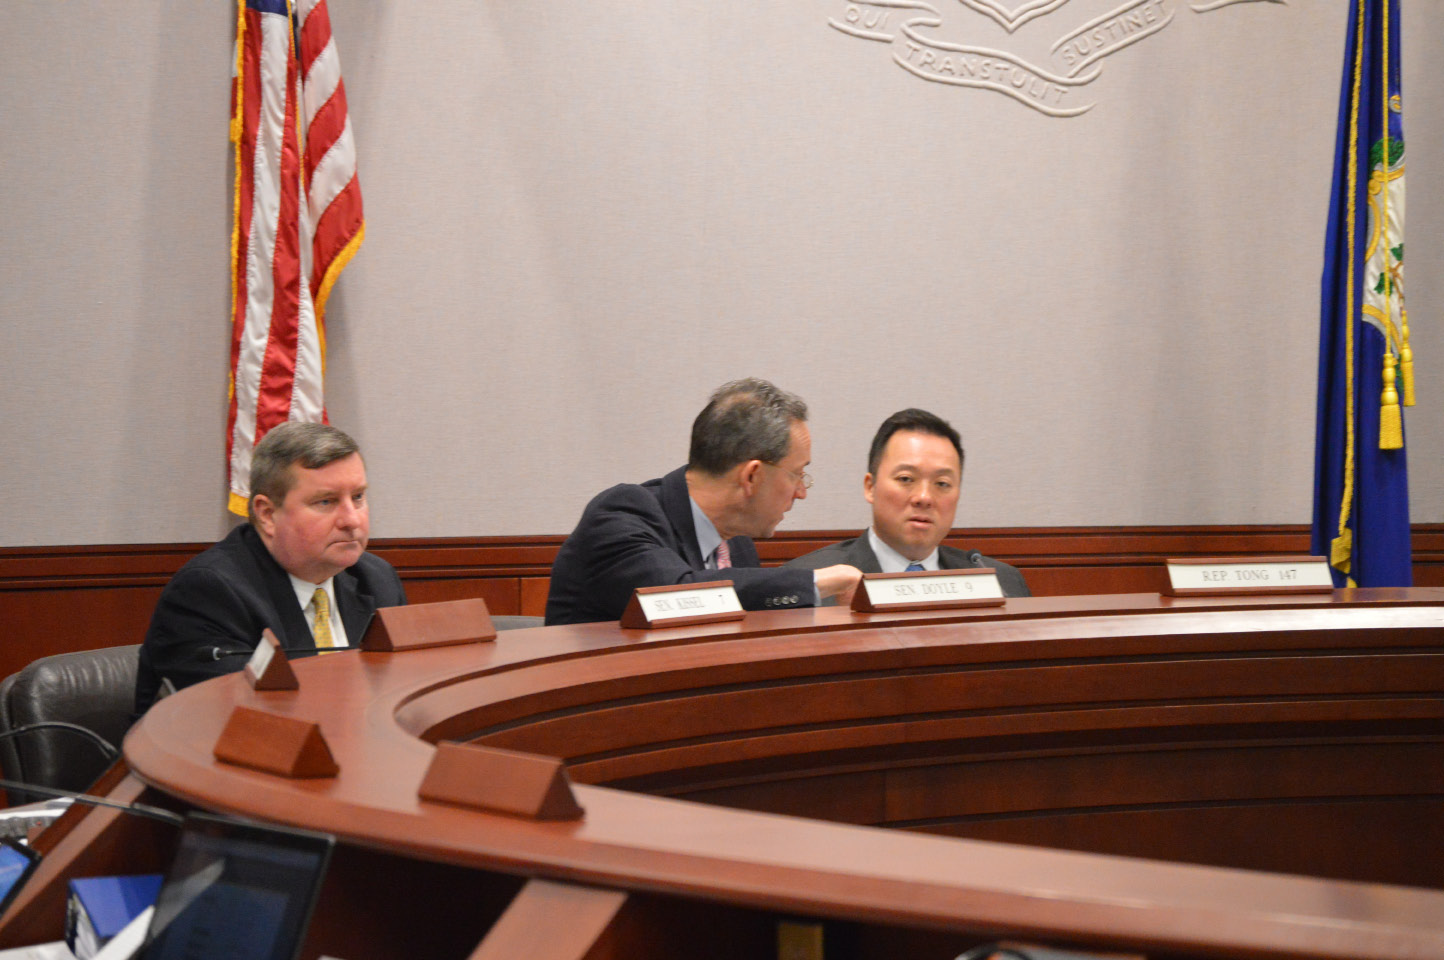 FILE PHOTO: From left to right, Sen. John Kissel, Sen. Paul Doyle and Rep. William Tong during a Judiciary Committee hearing Friday that took up several pieces of legislation, including a bill to require juveniles convicted of a sexual offense to register as a sex offender. | Mike Savino, Record-Journal